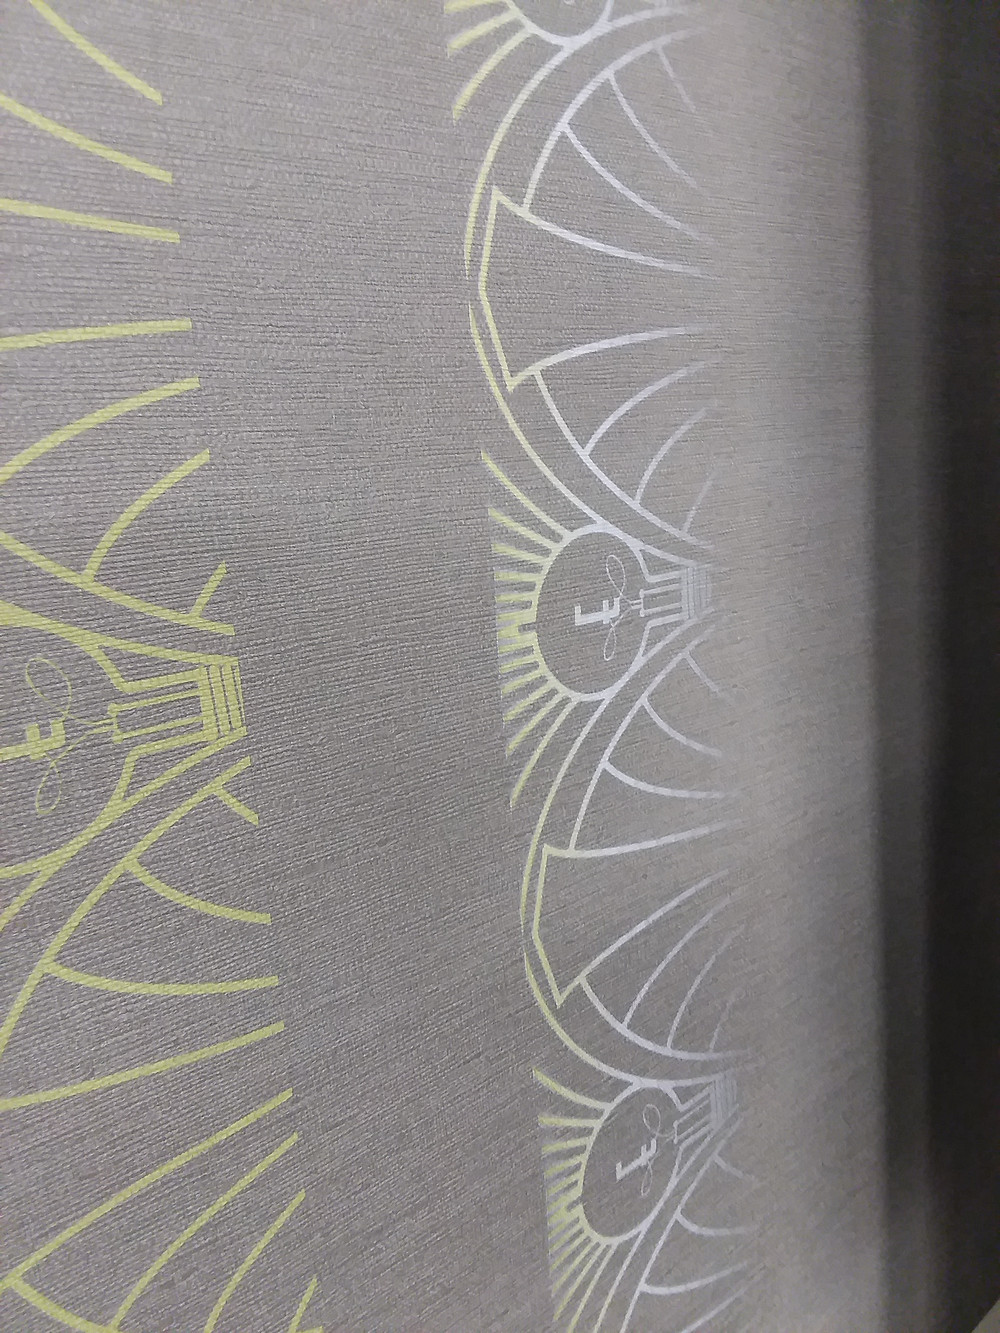 Multi-layer wall paper printing